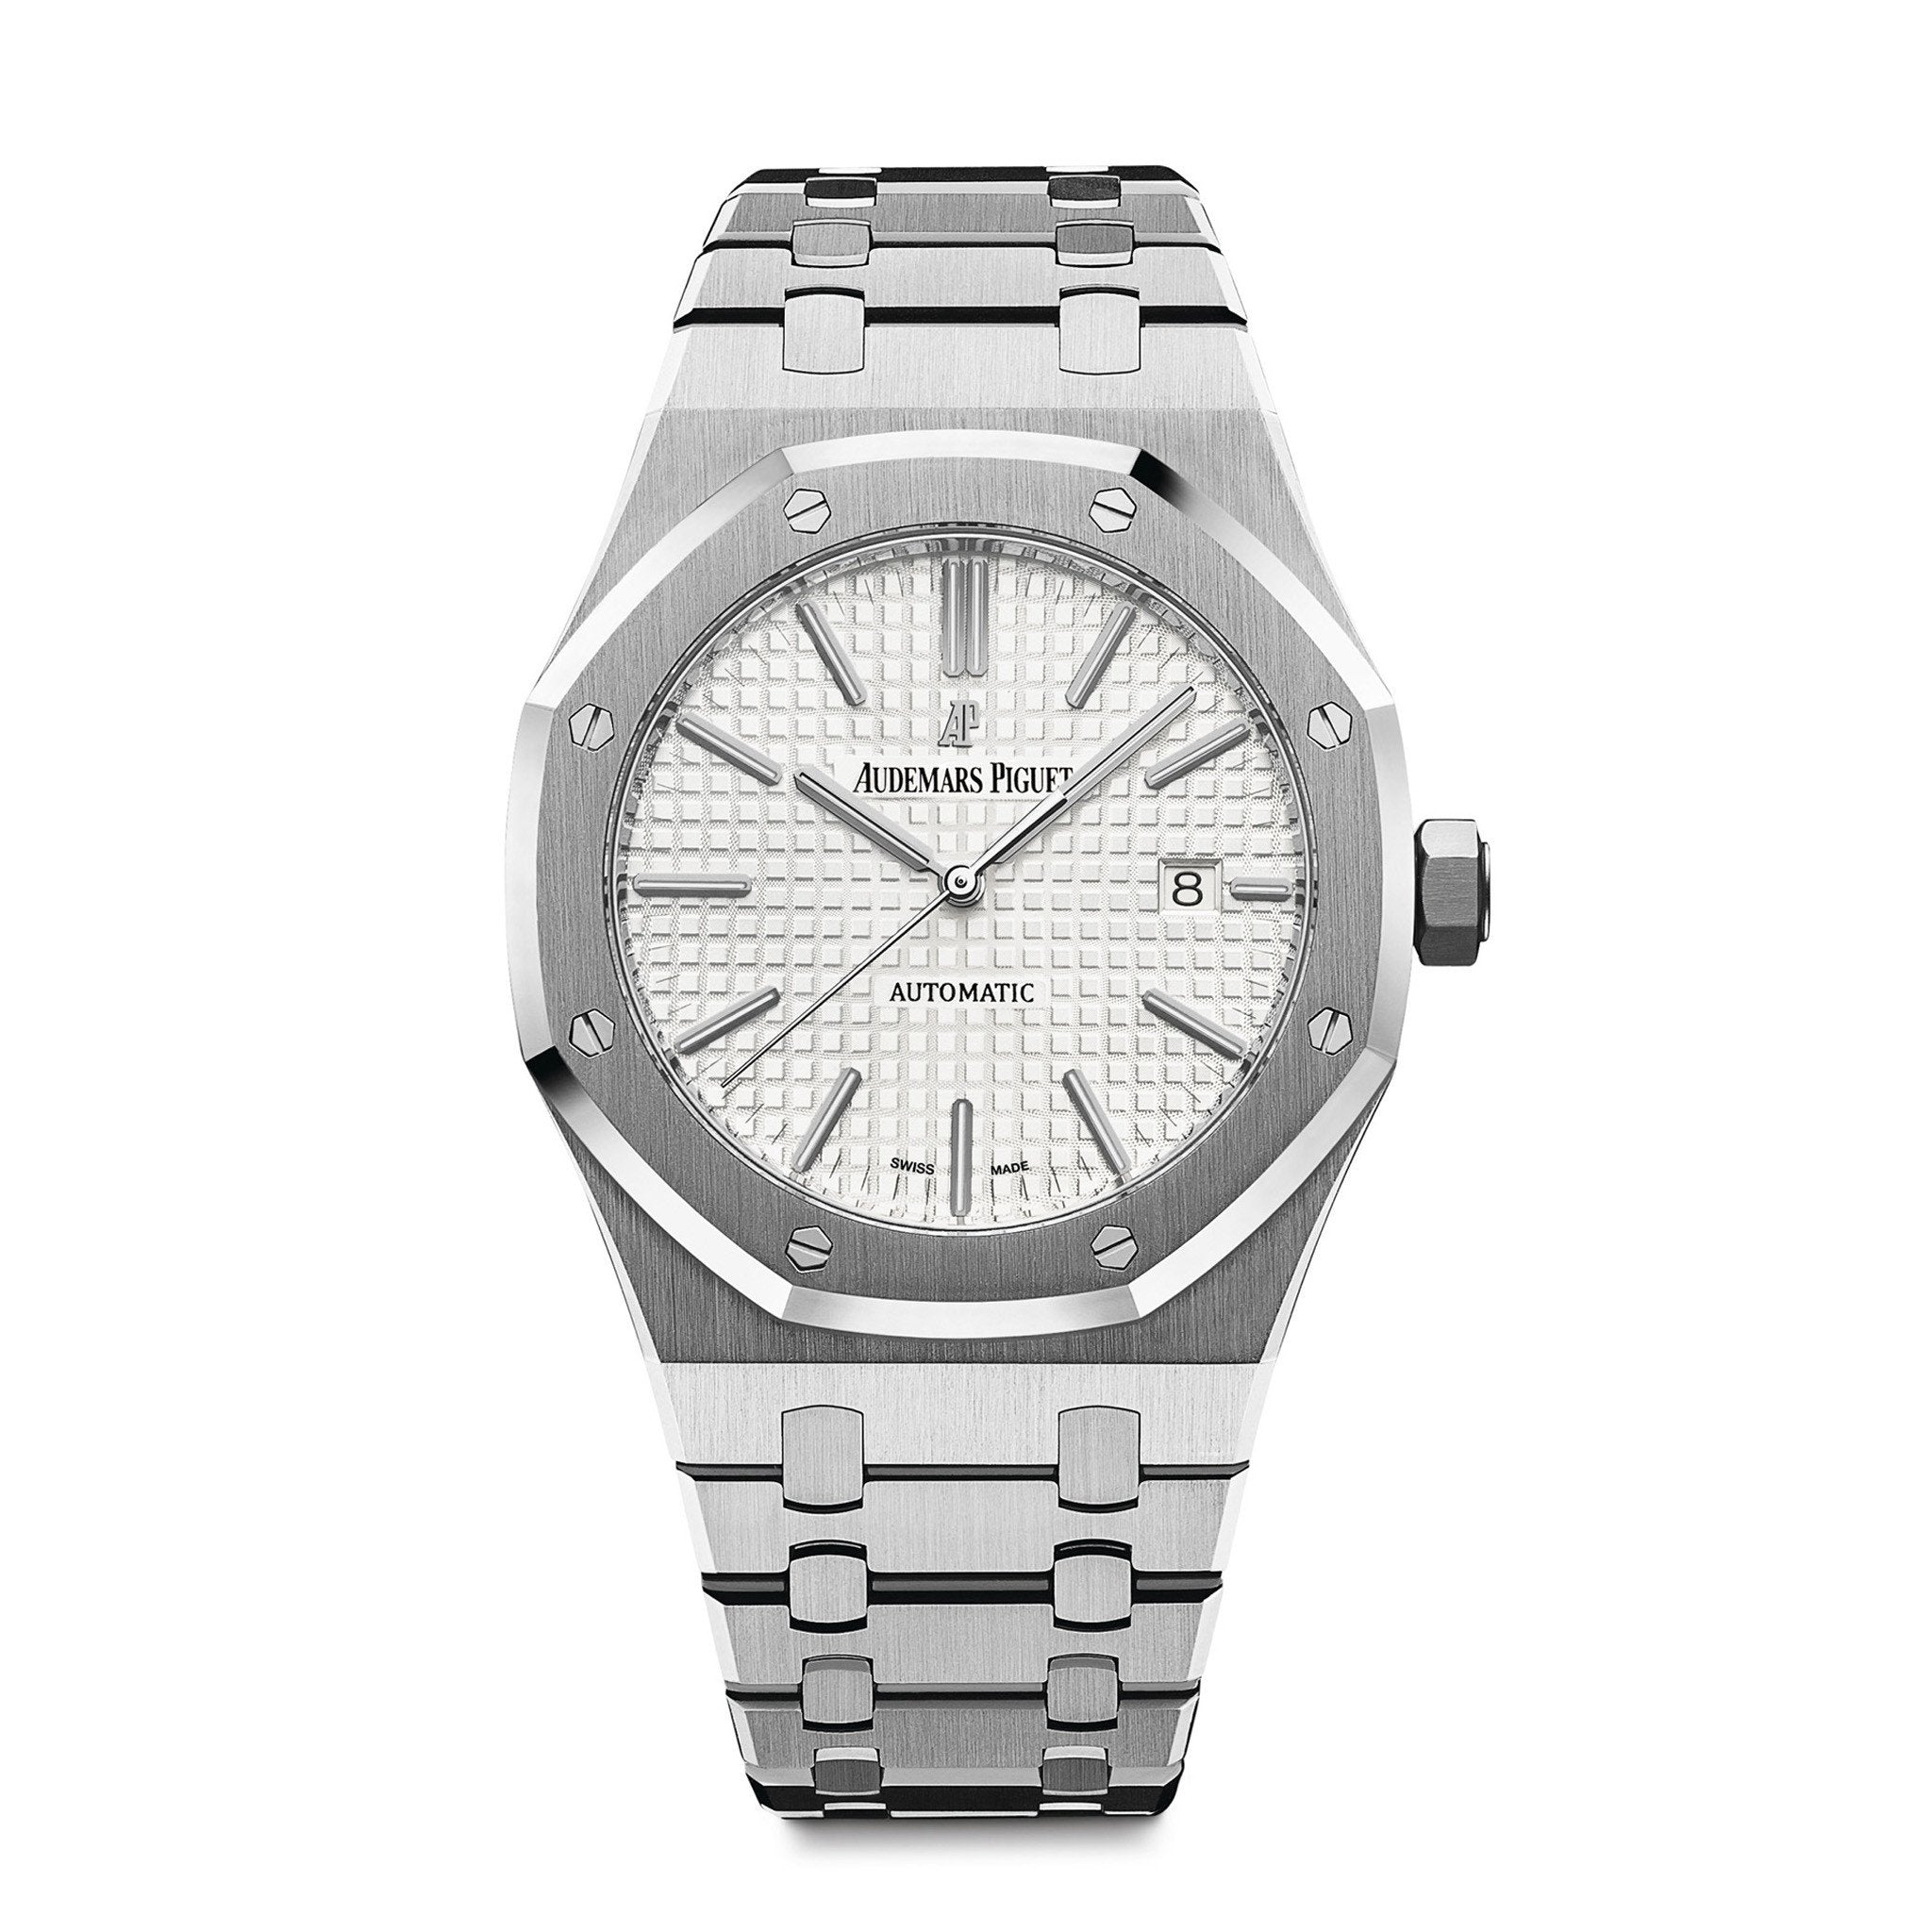 Audemars Piguet Royal Oak Stainless Steel White - Mizrahi Diamonds